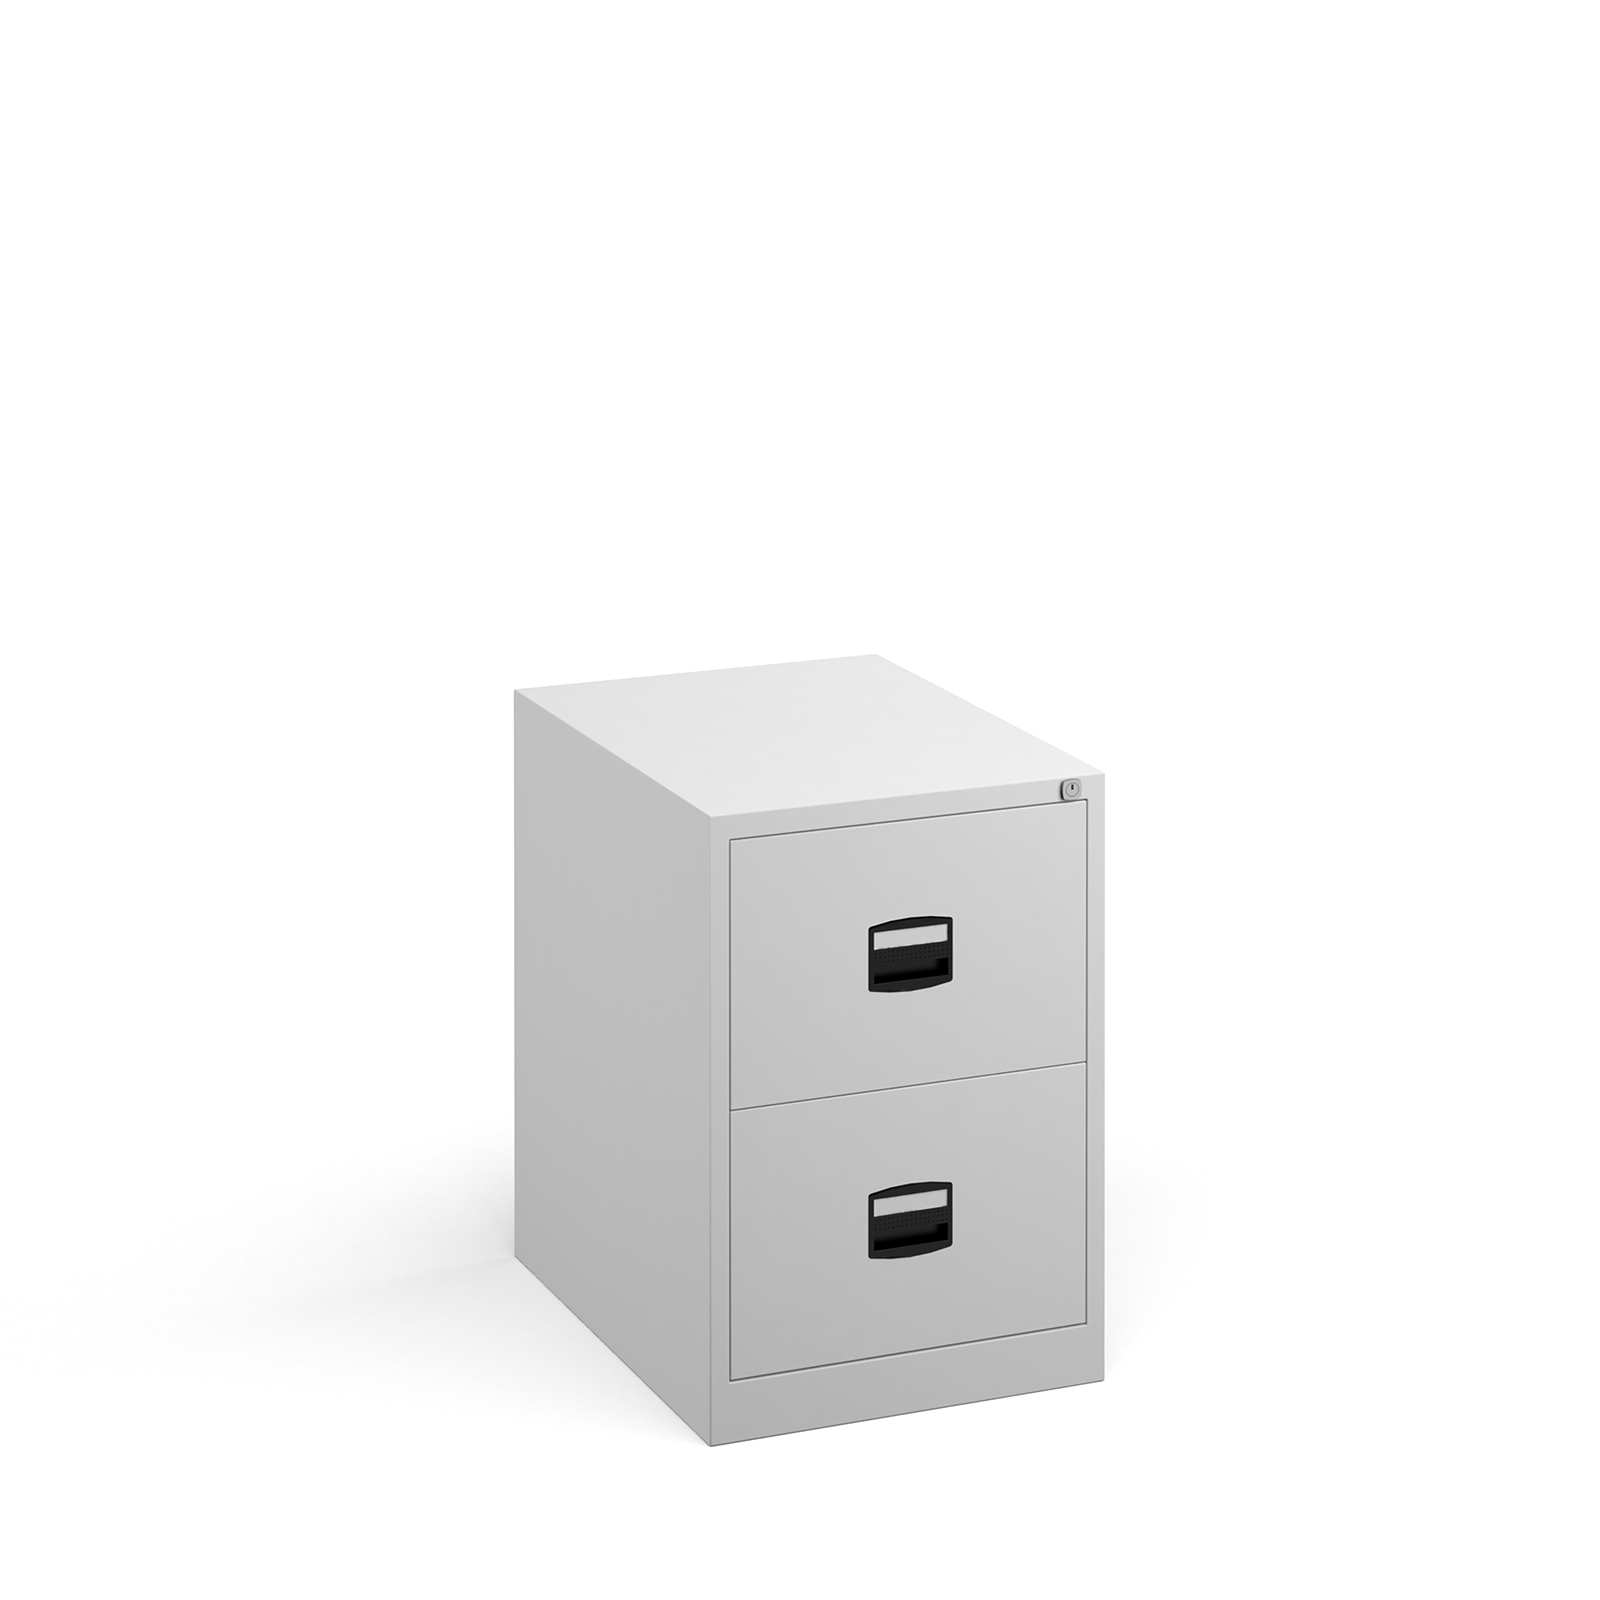 Steel Steel 2 drawer contract filing cabinet 711mm high - white